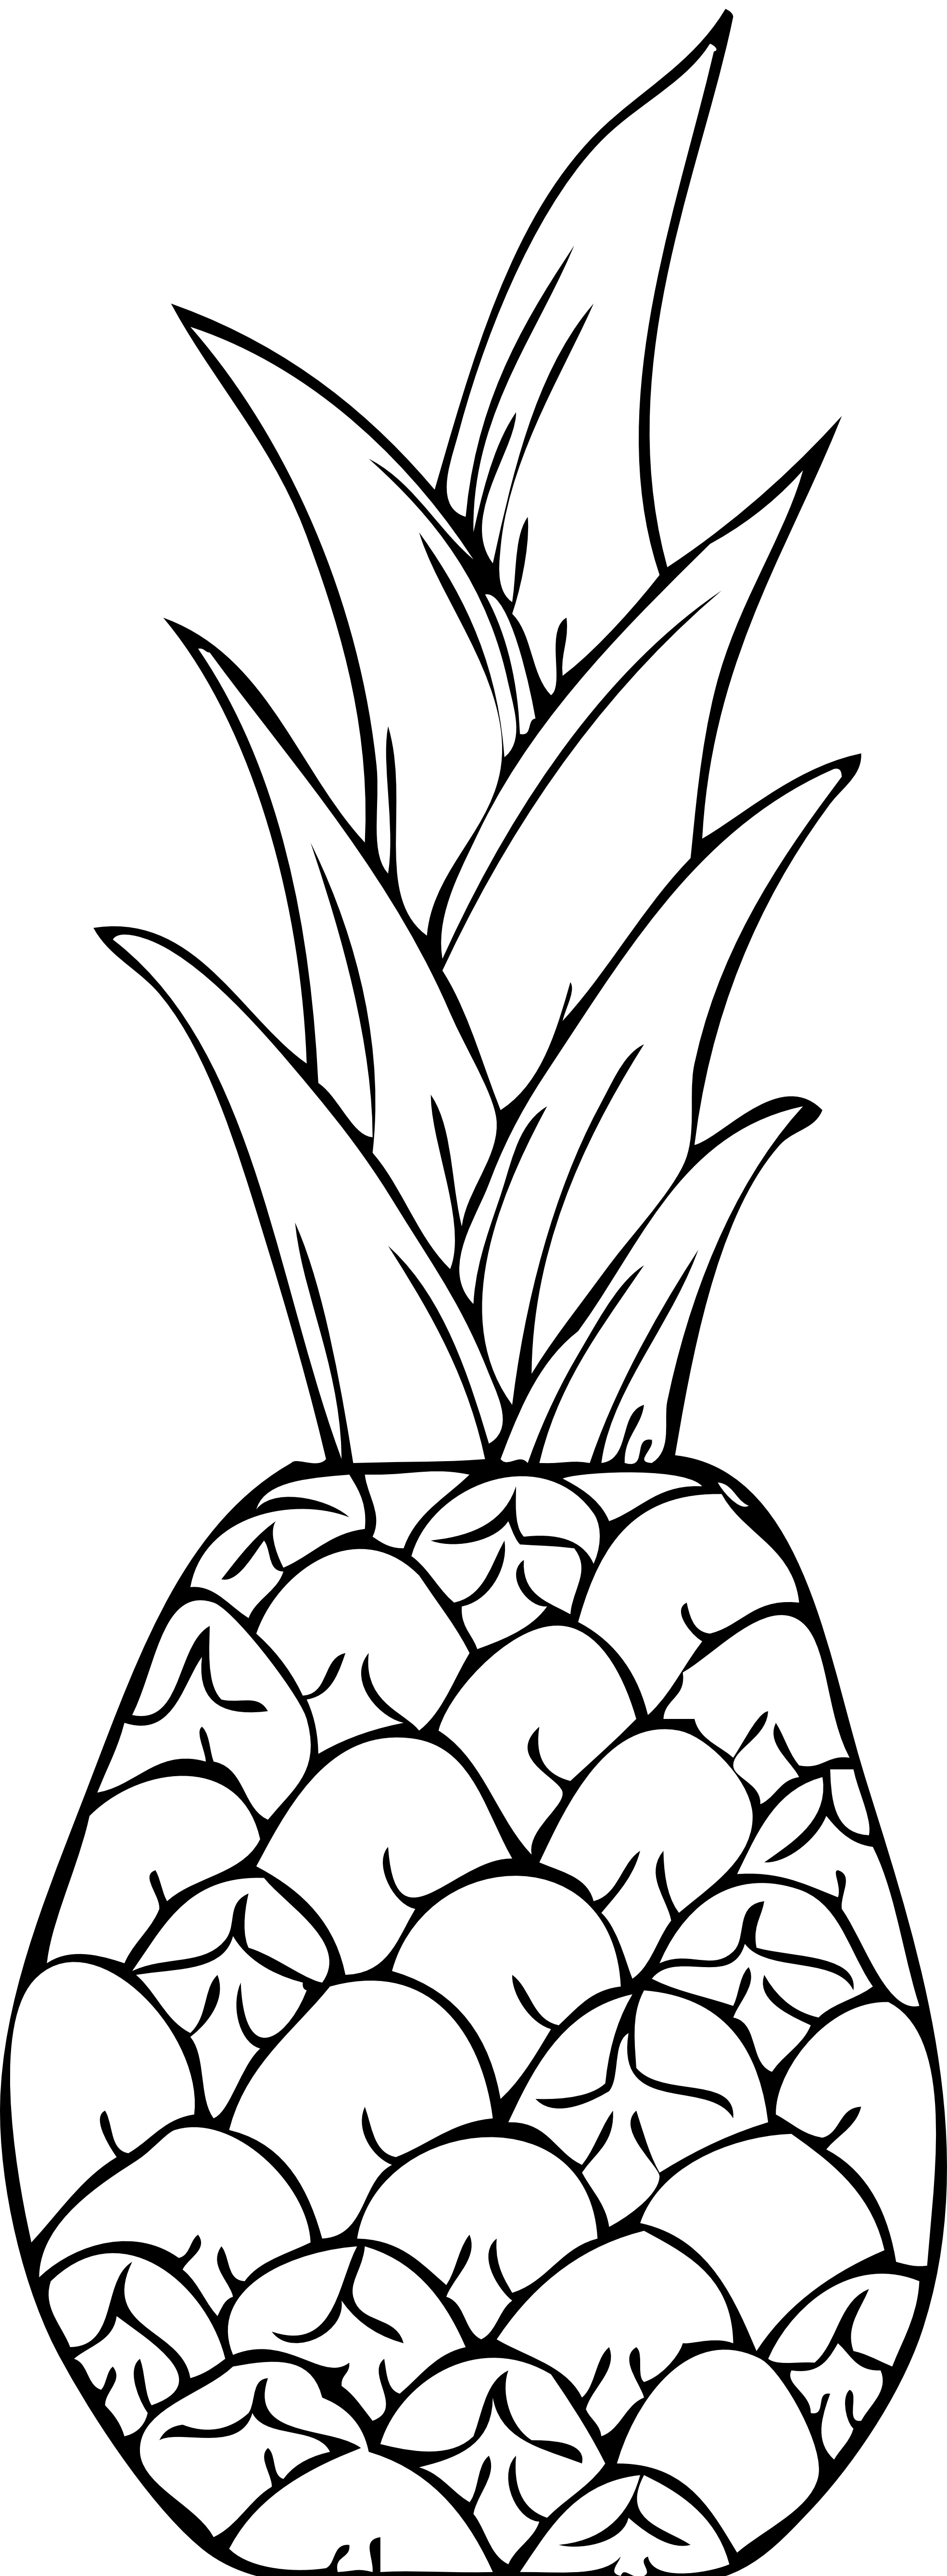 pineapple coloring sheet a pair of happy pineapple coloring page download print sheet pineapple coloring